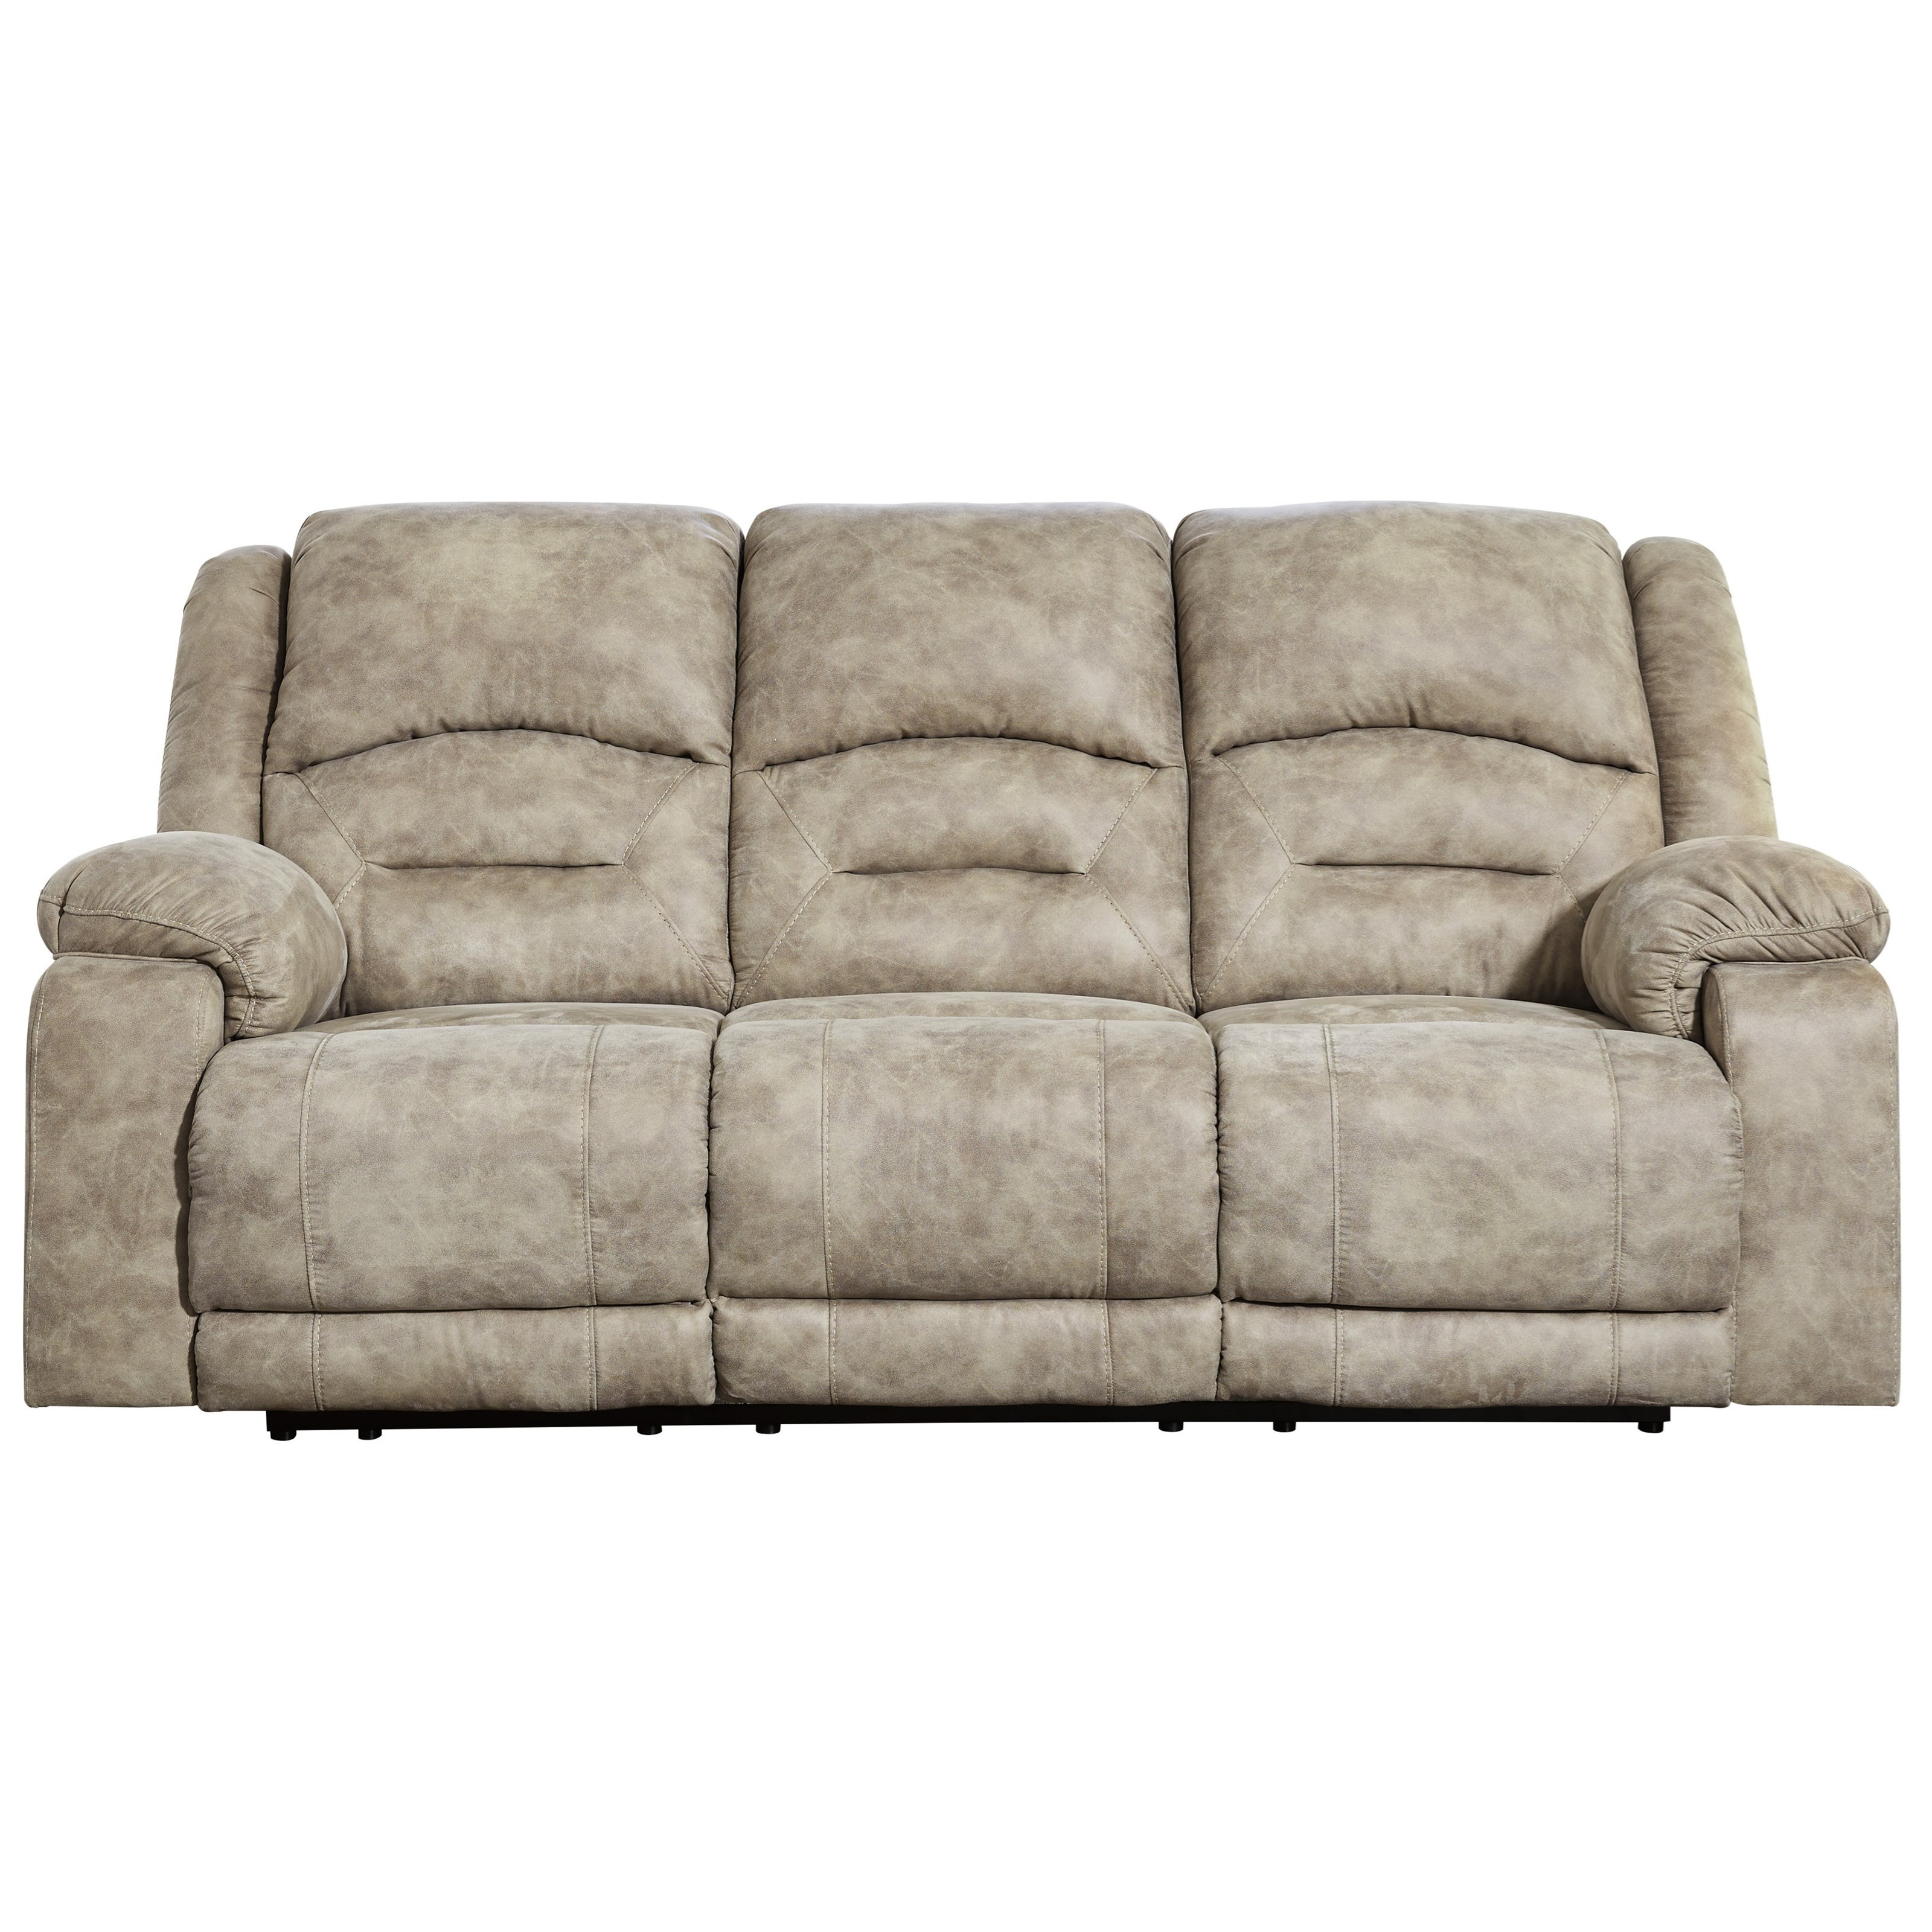 Benchcraft McGinty Power Reclining Sofa w/ Adjustable Headrest - Item Number: 5410115